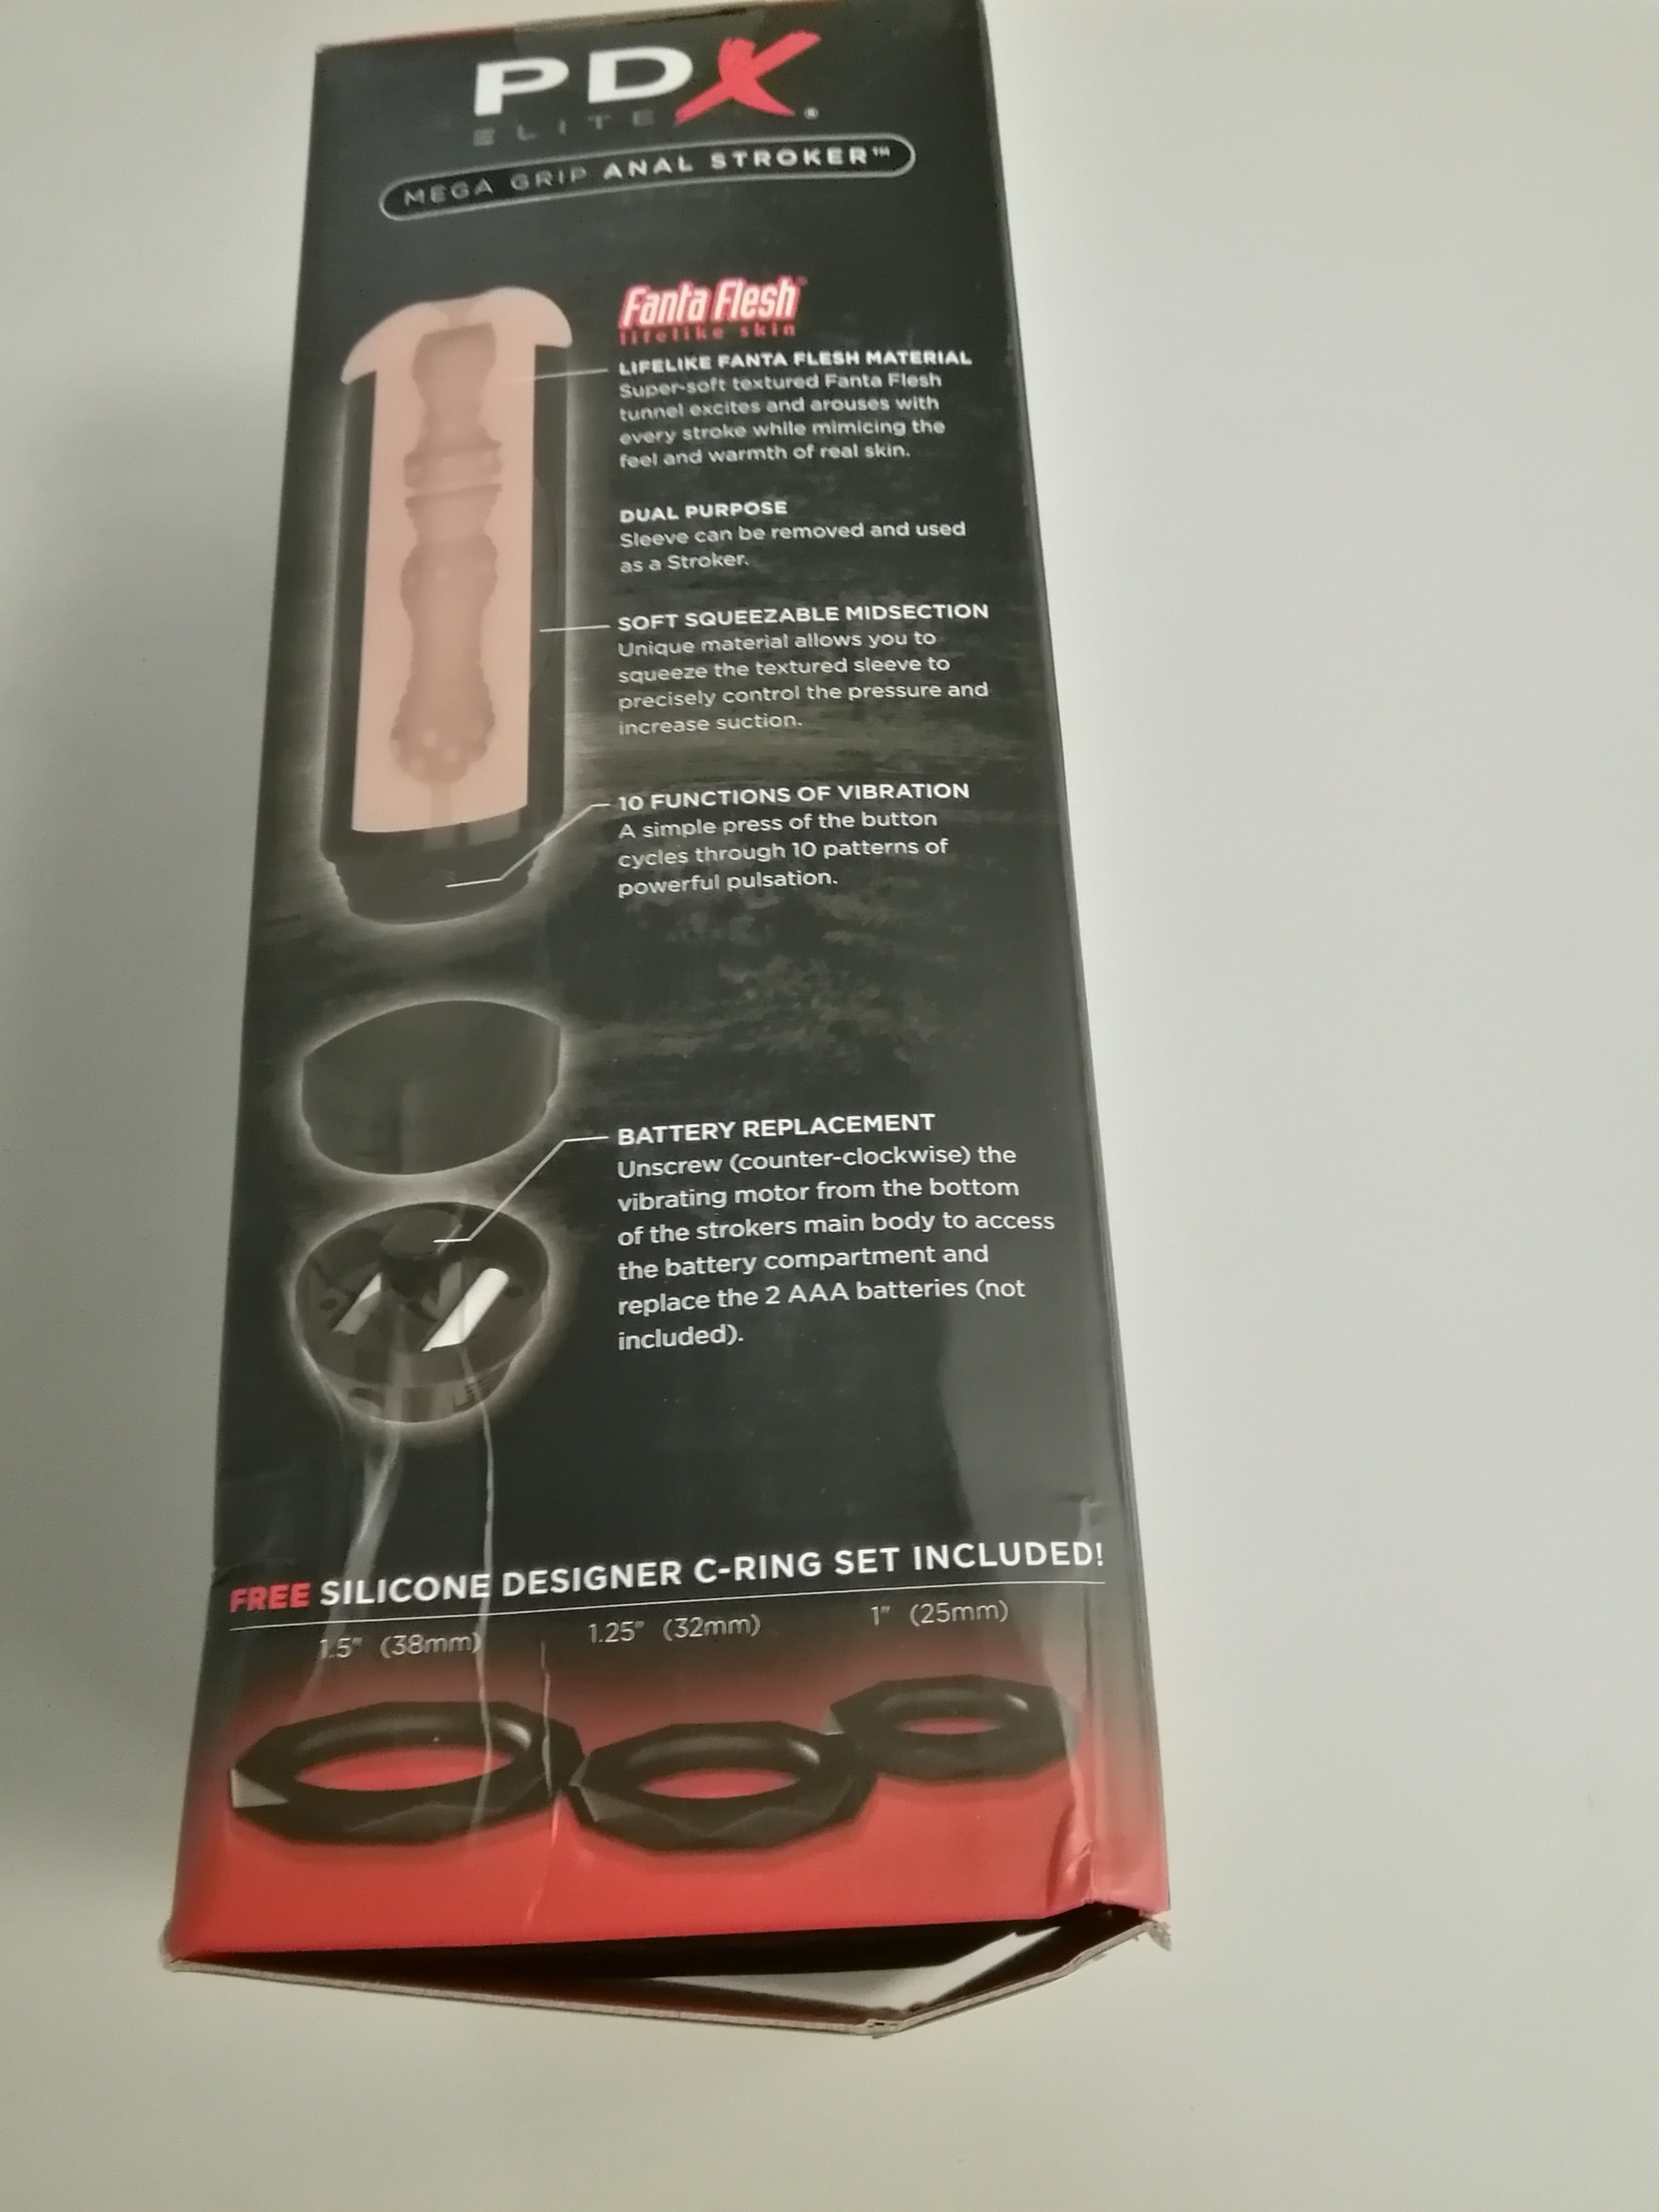 PDX Elite Mega Grip Anal Stroker (slightly damaged packaging) (enyhén törött doboz) thumbnail